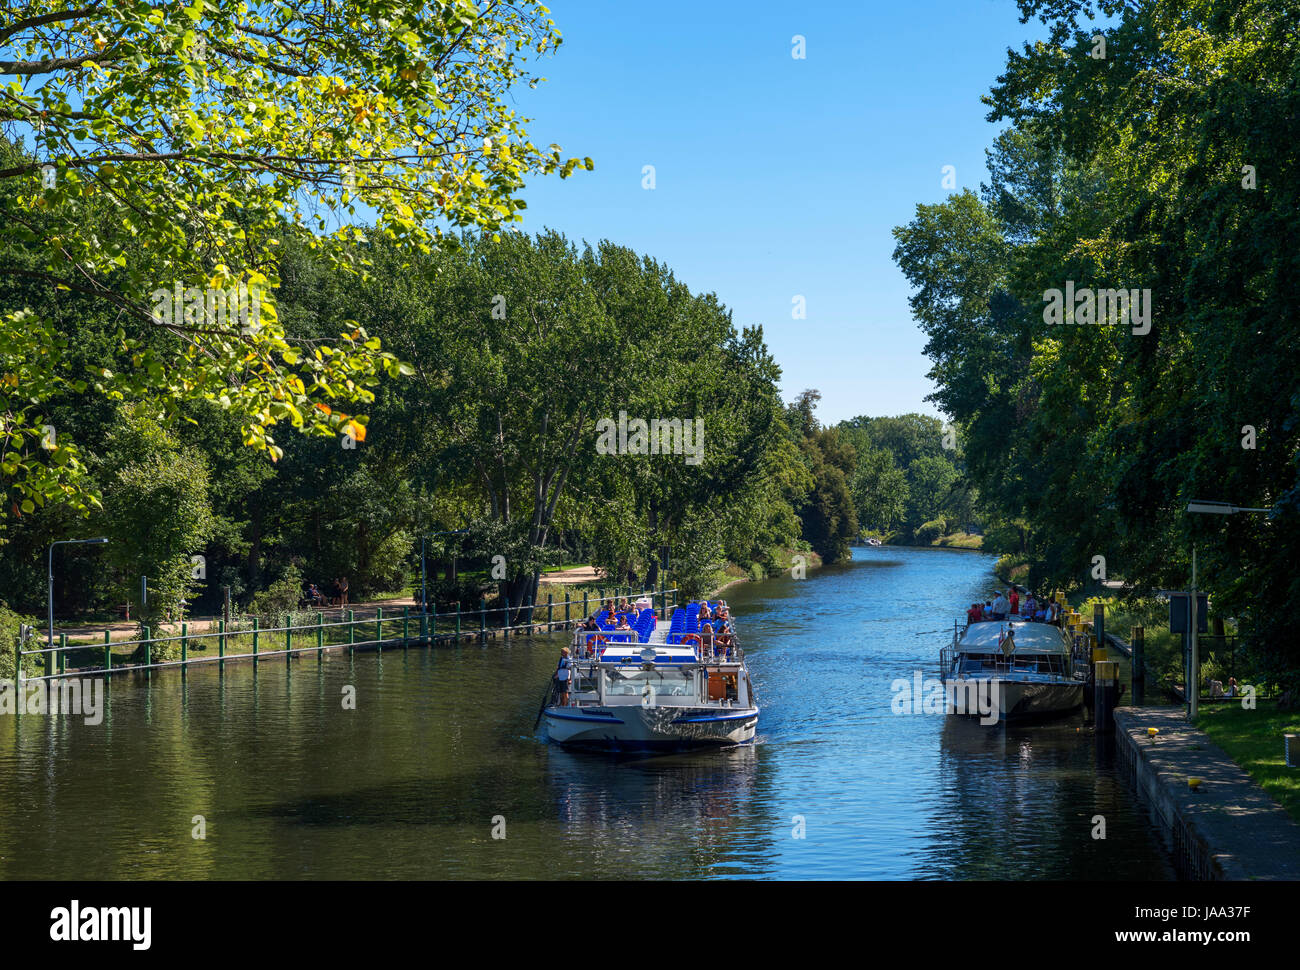 River cruise boat on the Landwehr Canal in the Tiergarten, Berlin, Germany - Stock Image